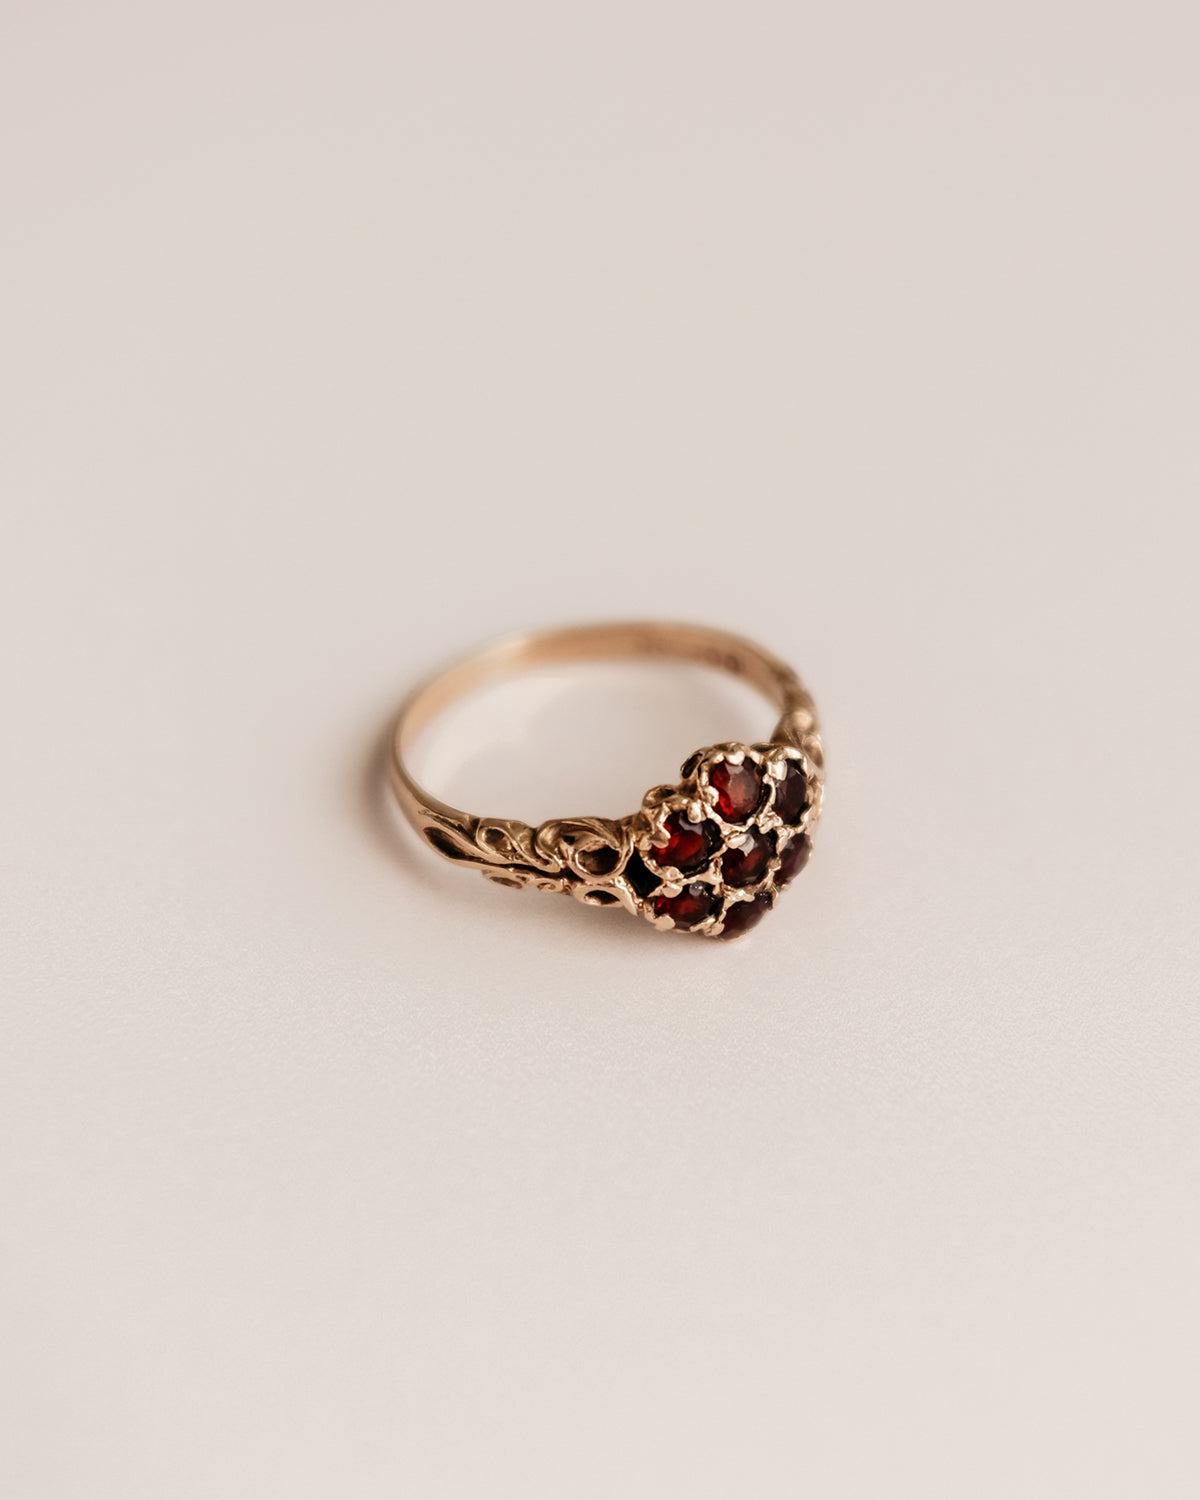 Image of Erica 9ct Gold Garnet Cluster Ring